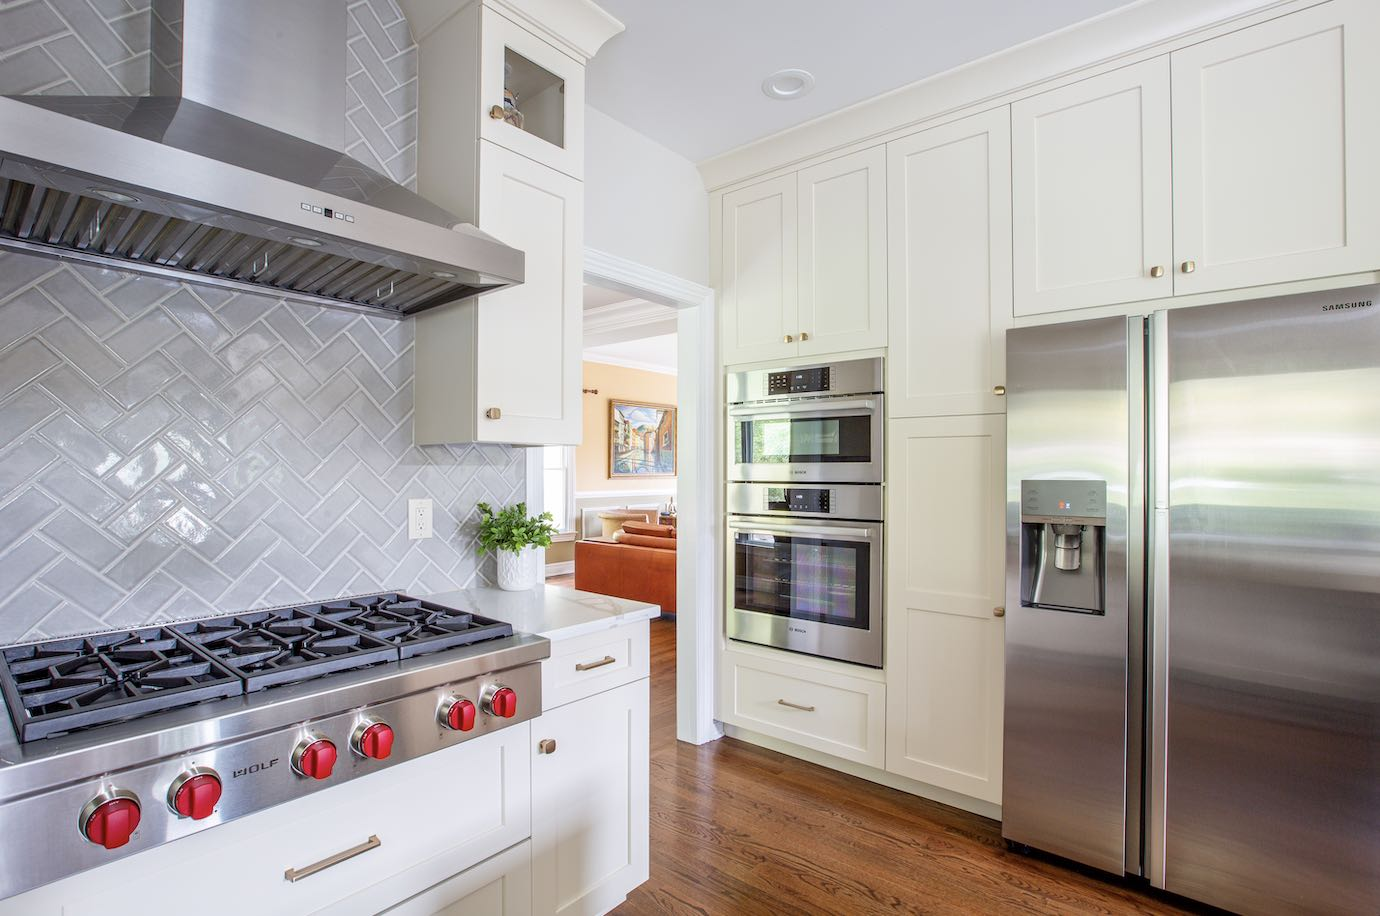 appliance-sizes-wall-oven